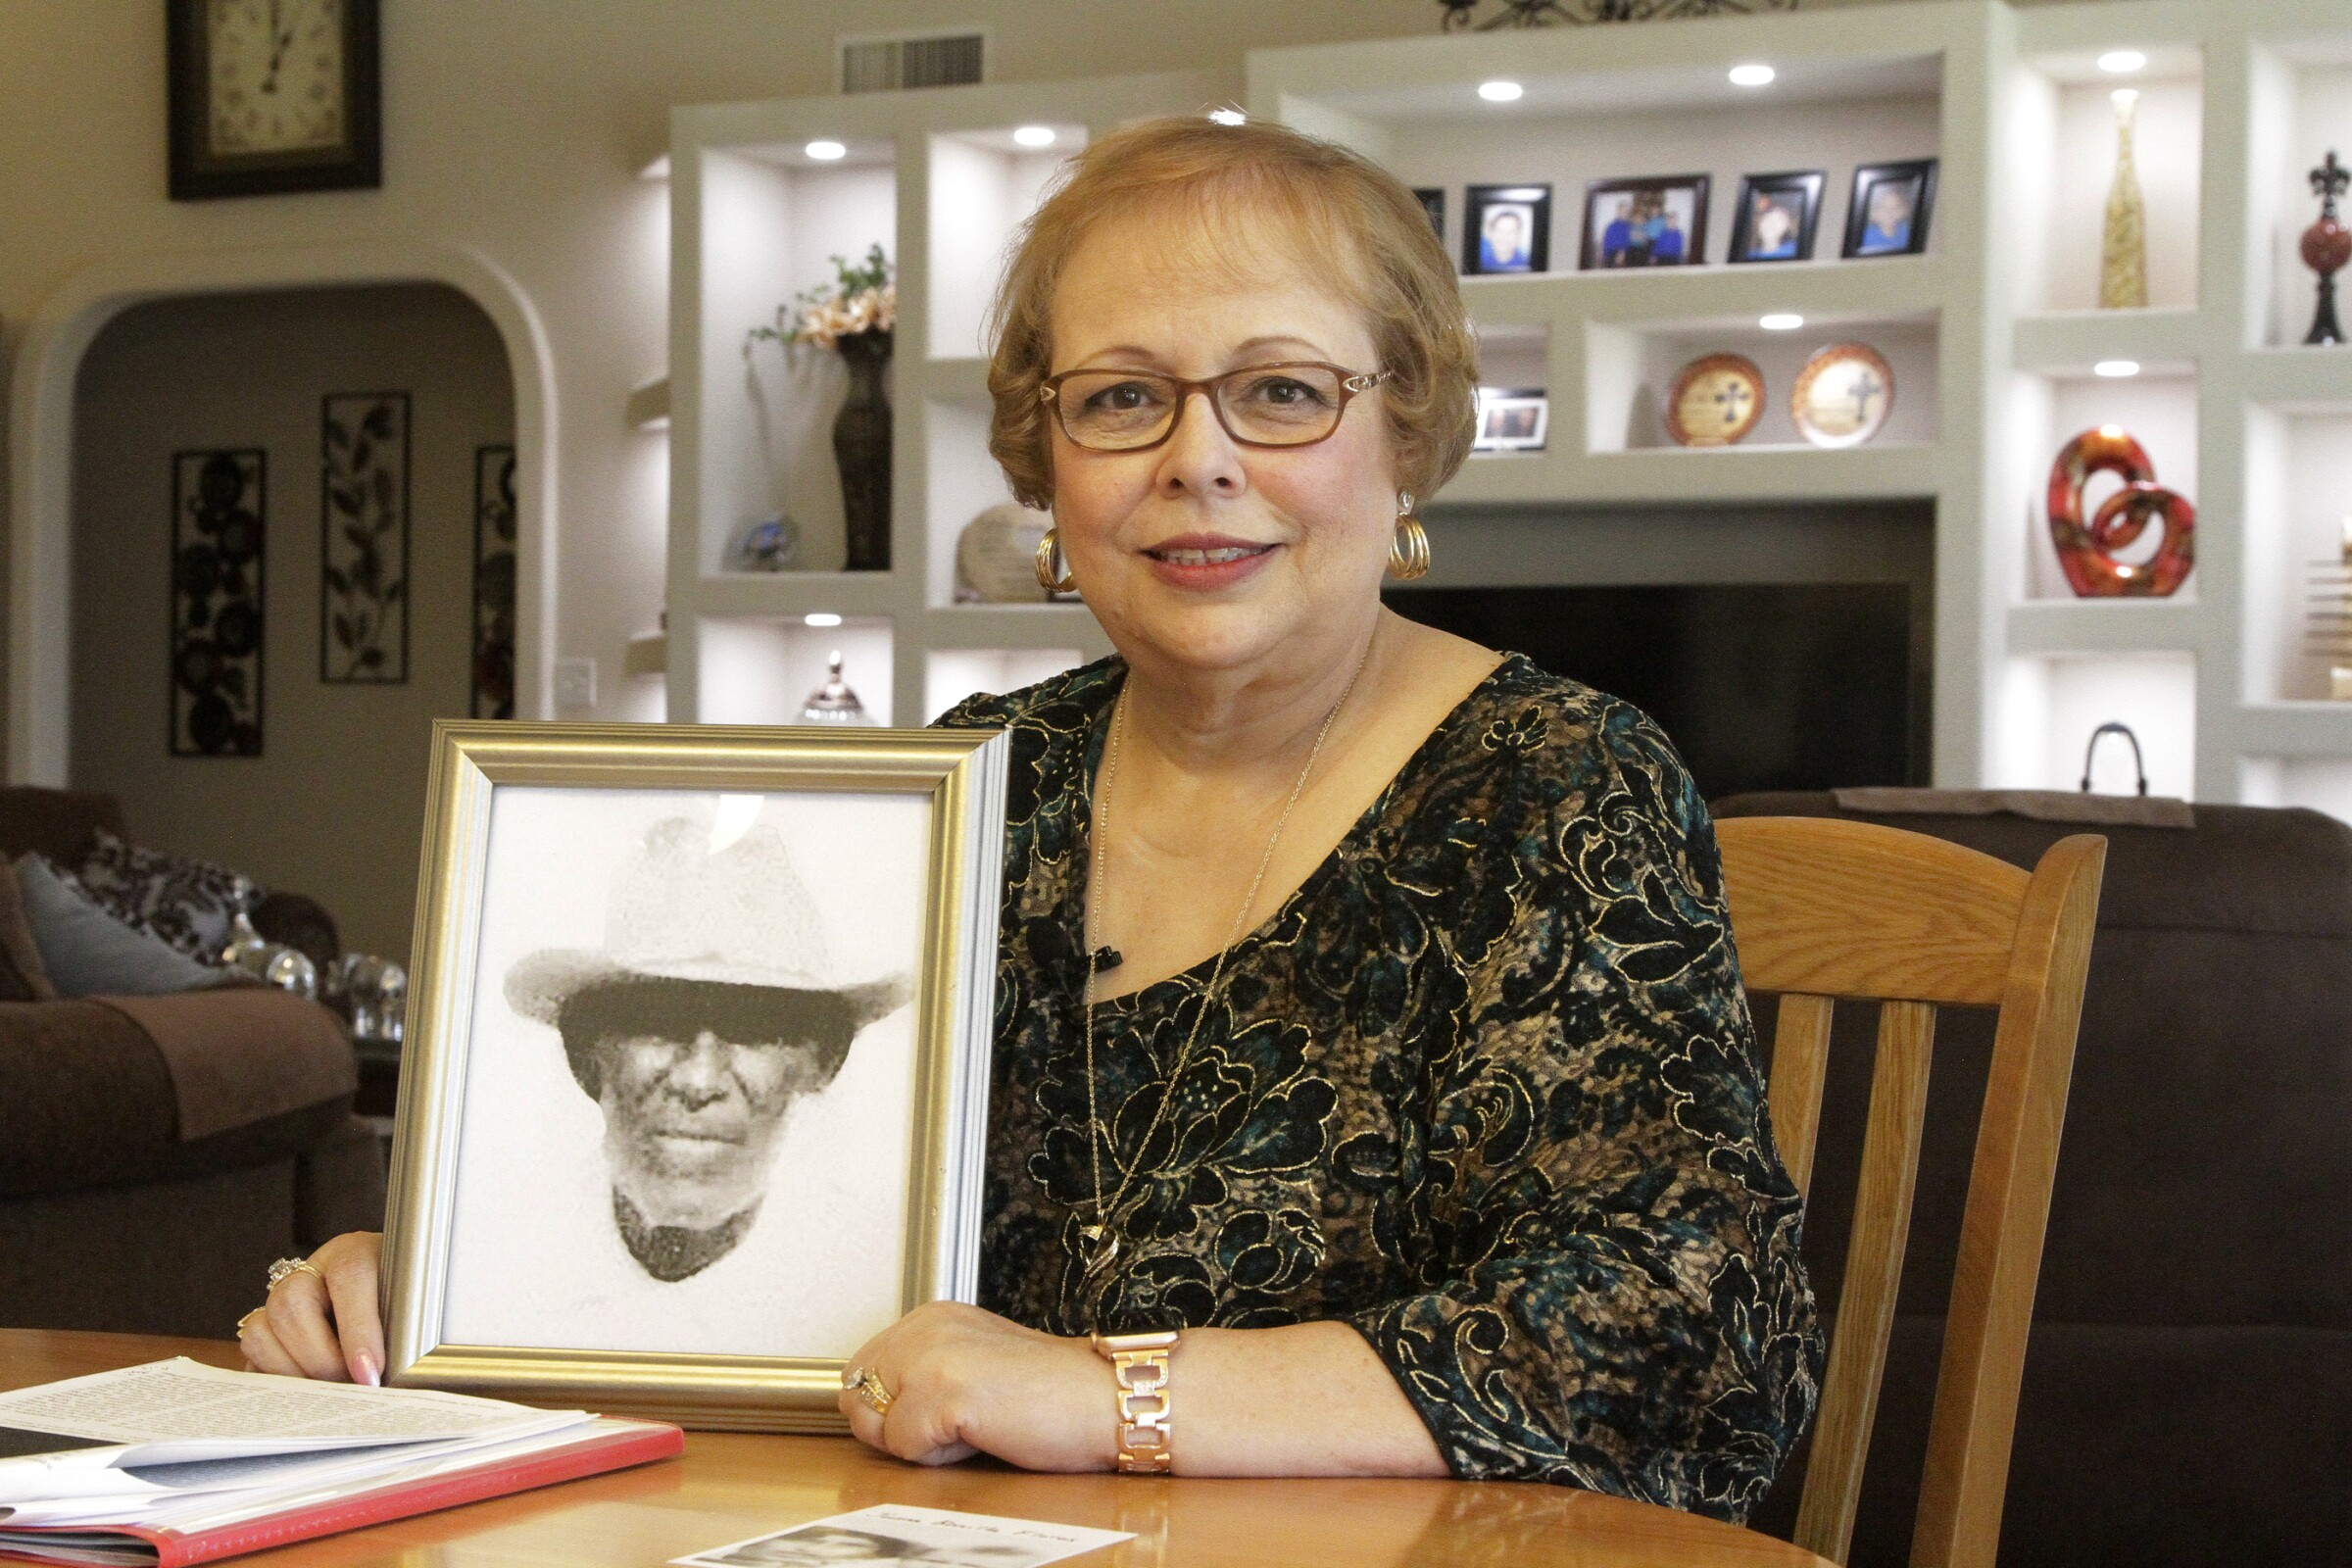 Arlinda Valencia with a portrait of her great-grandfather Longino Flores